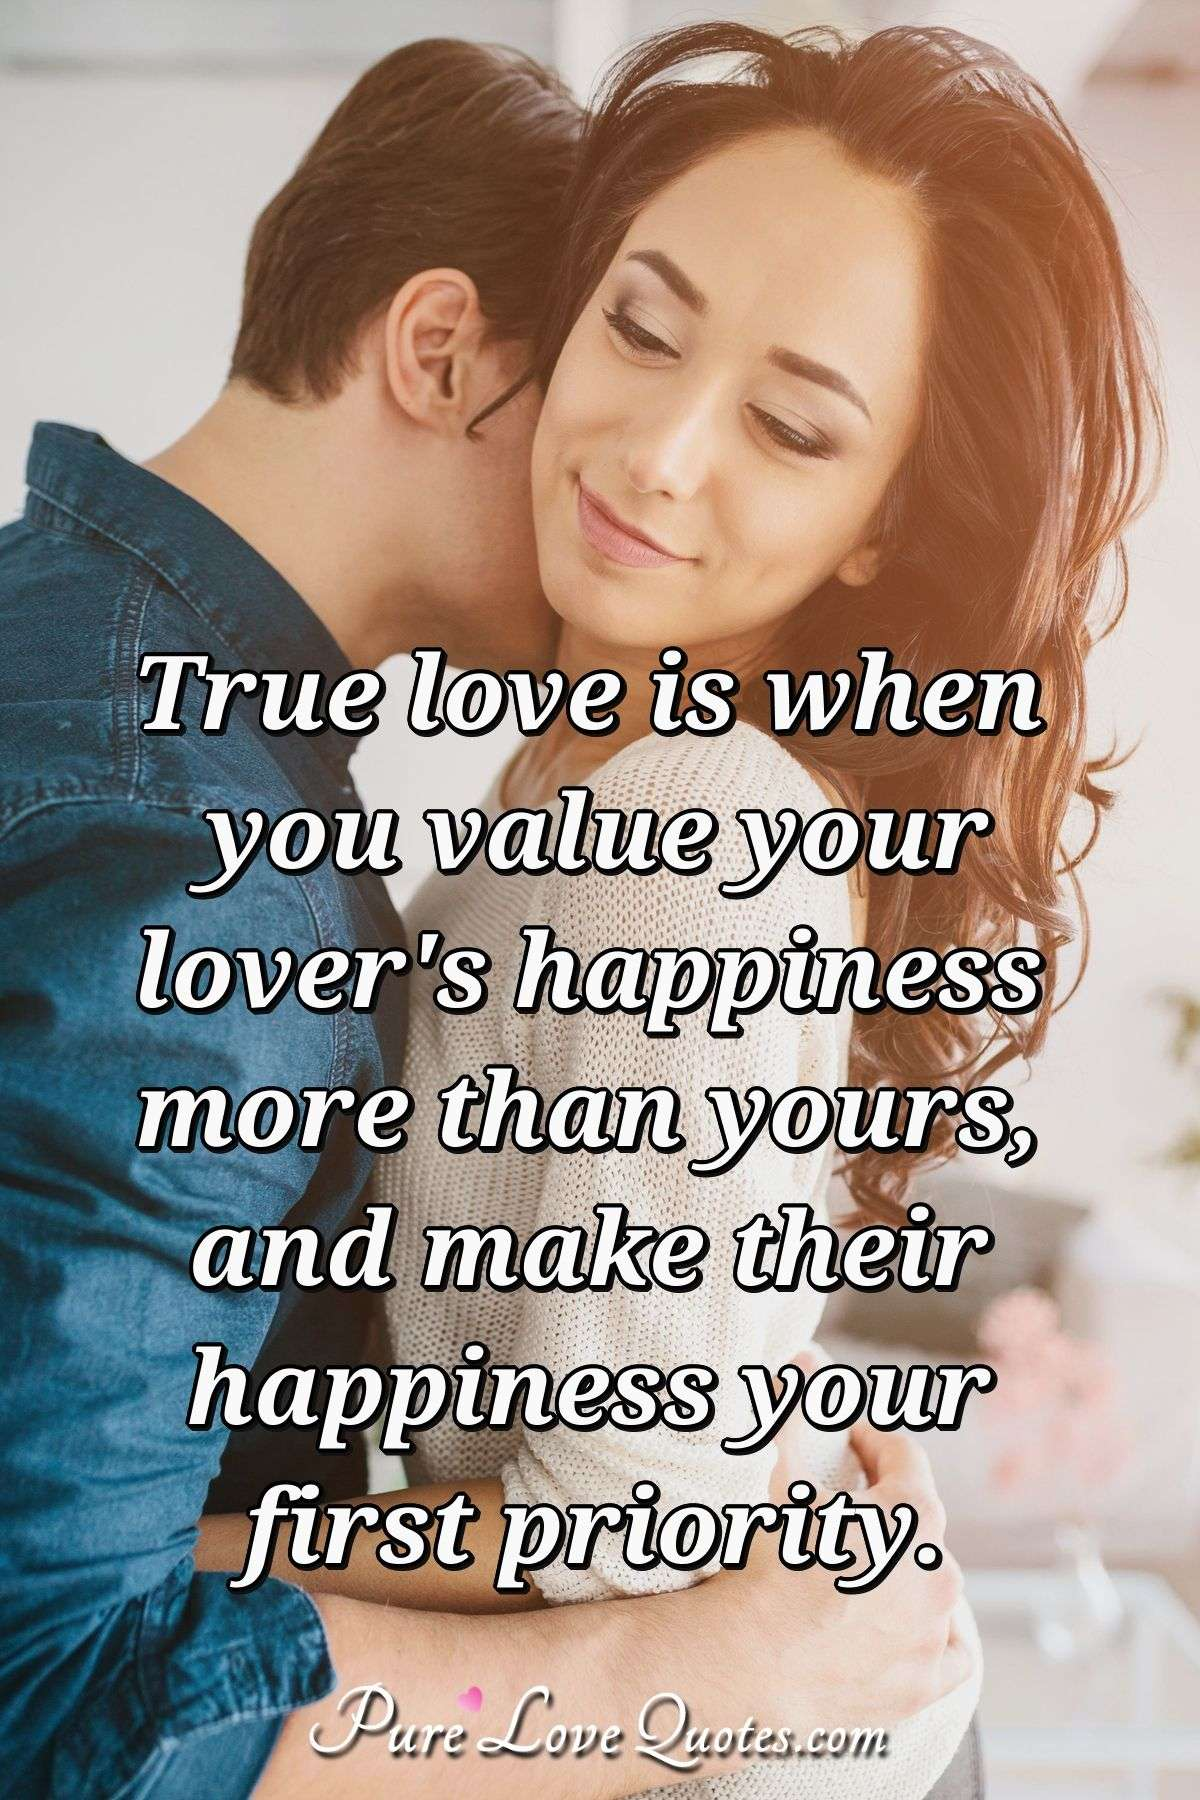 True love is when you value your lovers happiness more